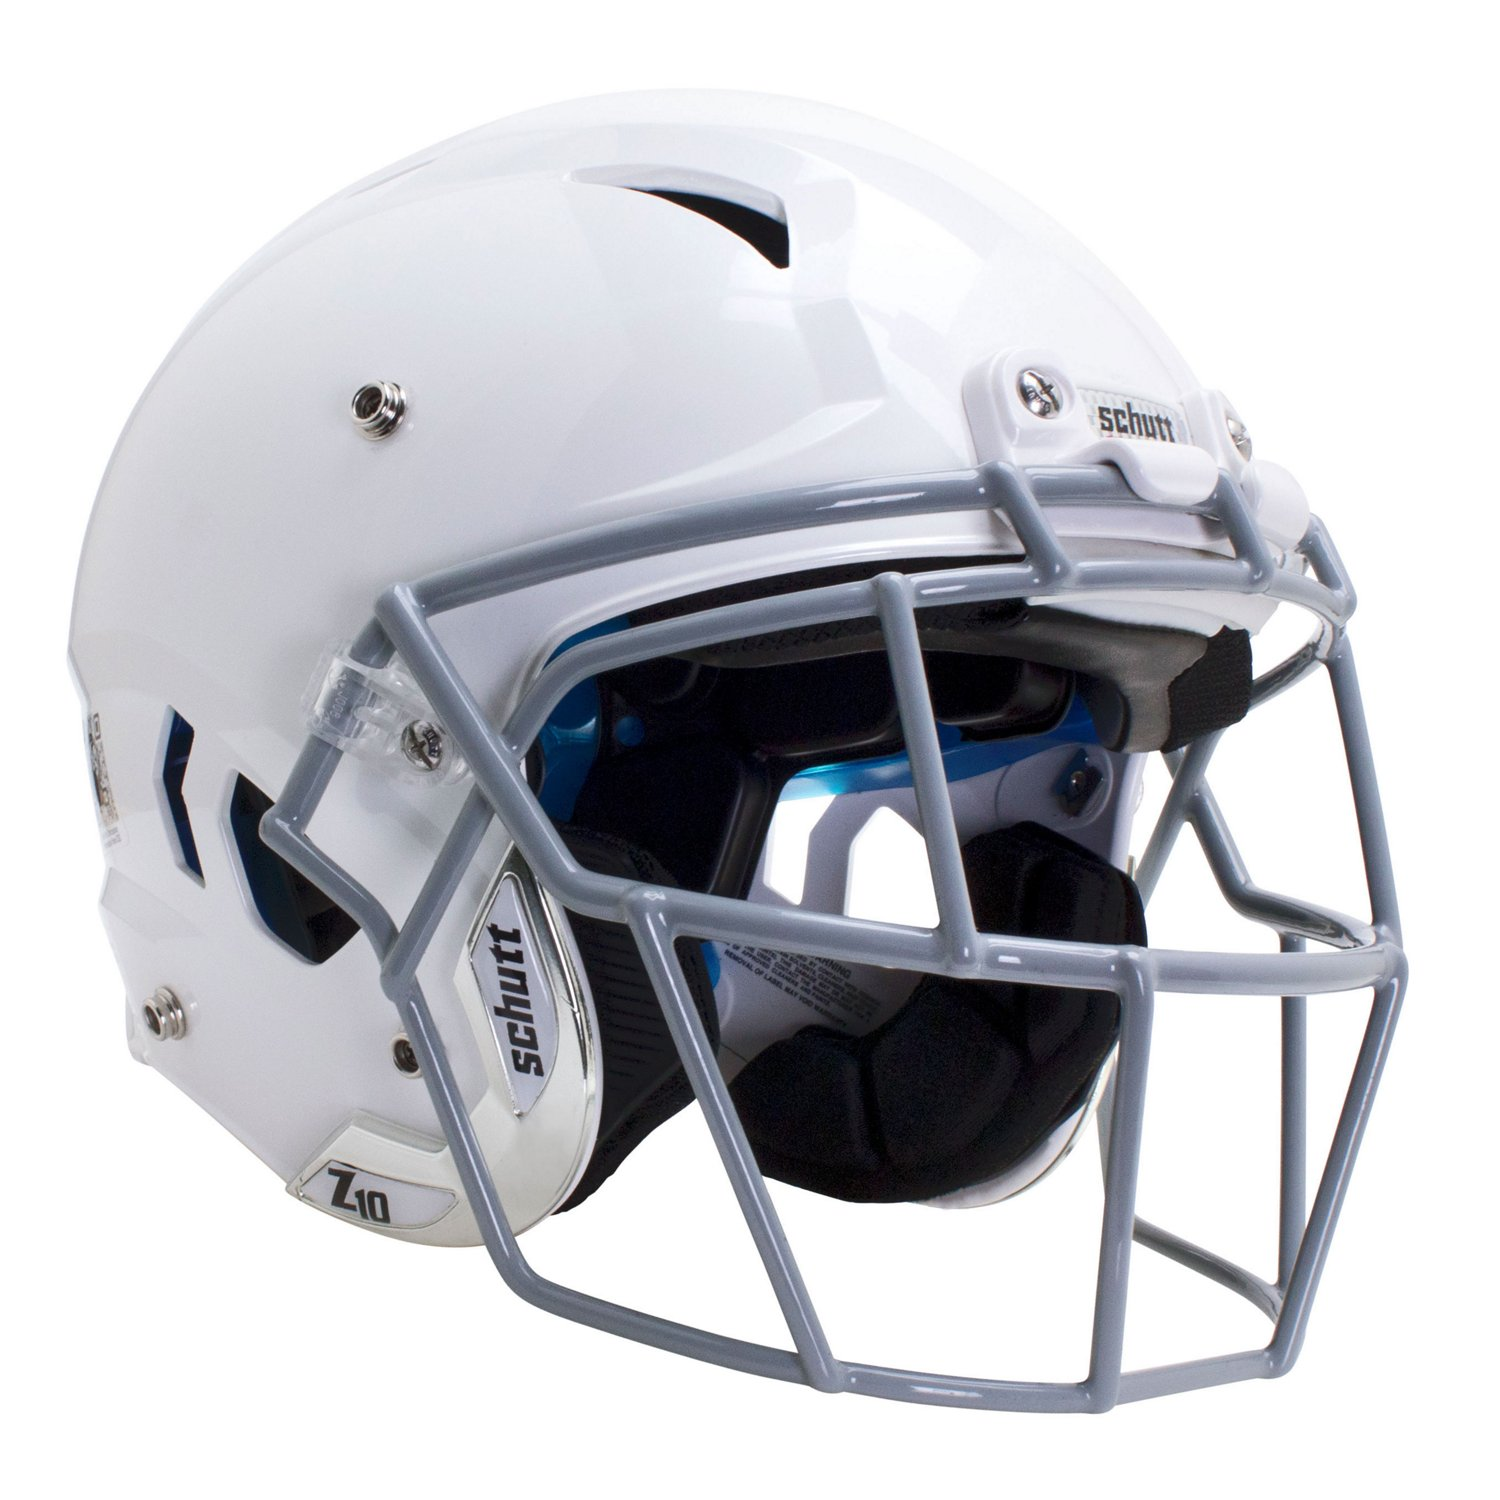 best sneakers e6f91 0b267 Display product reviews for Schutt Youth Vengeance Z10 Football Helmet